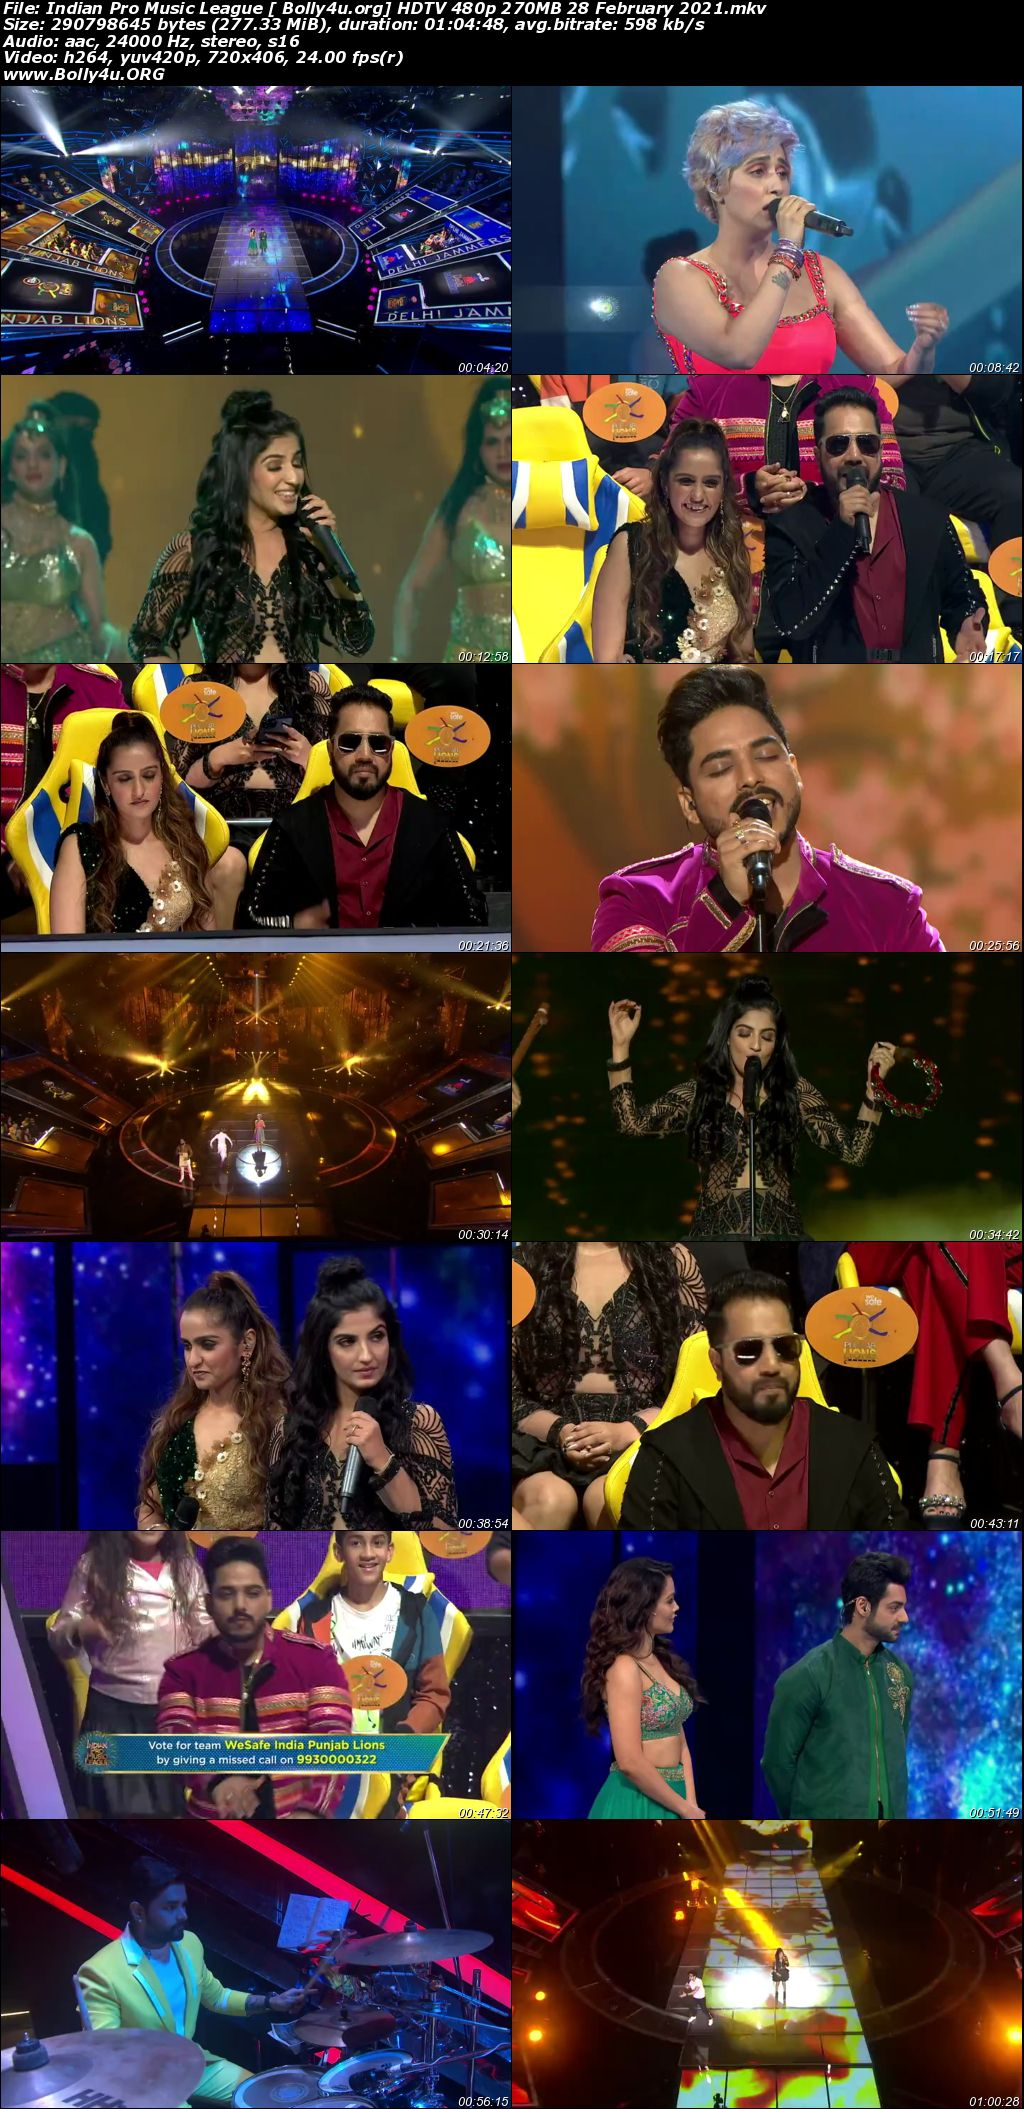 Indian Pro Music League HDTV 480p 270MB 28 February 2021 Download